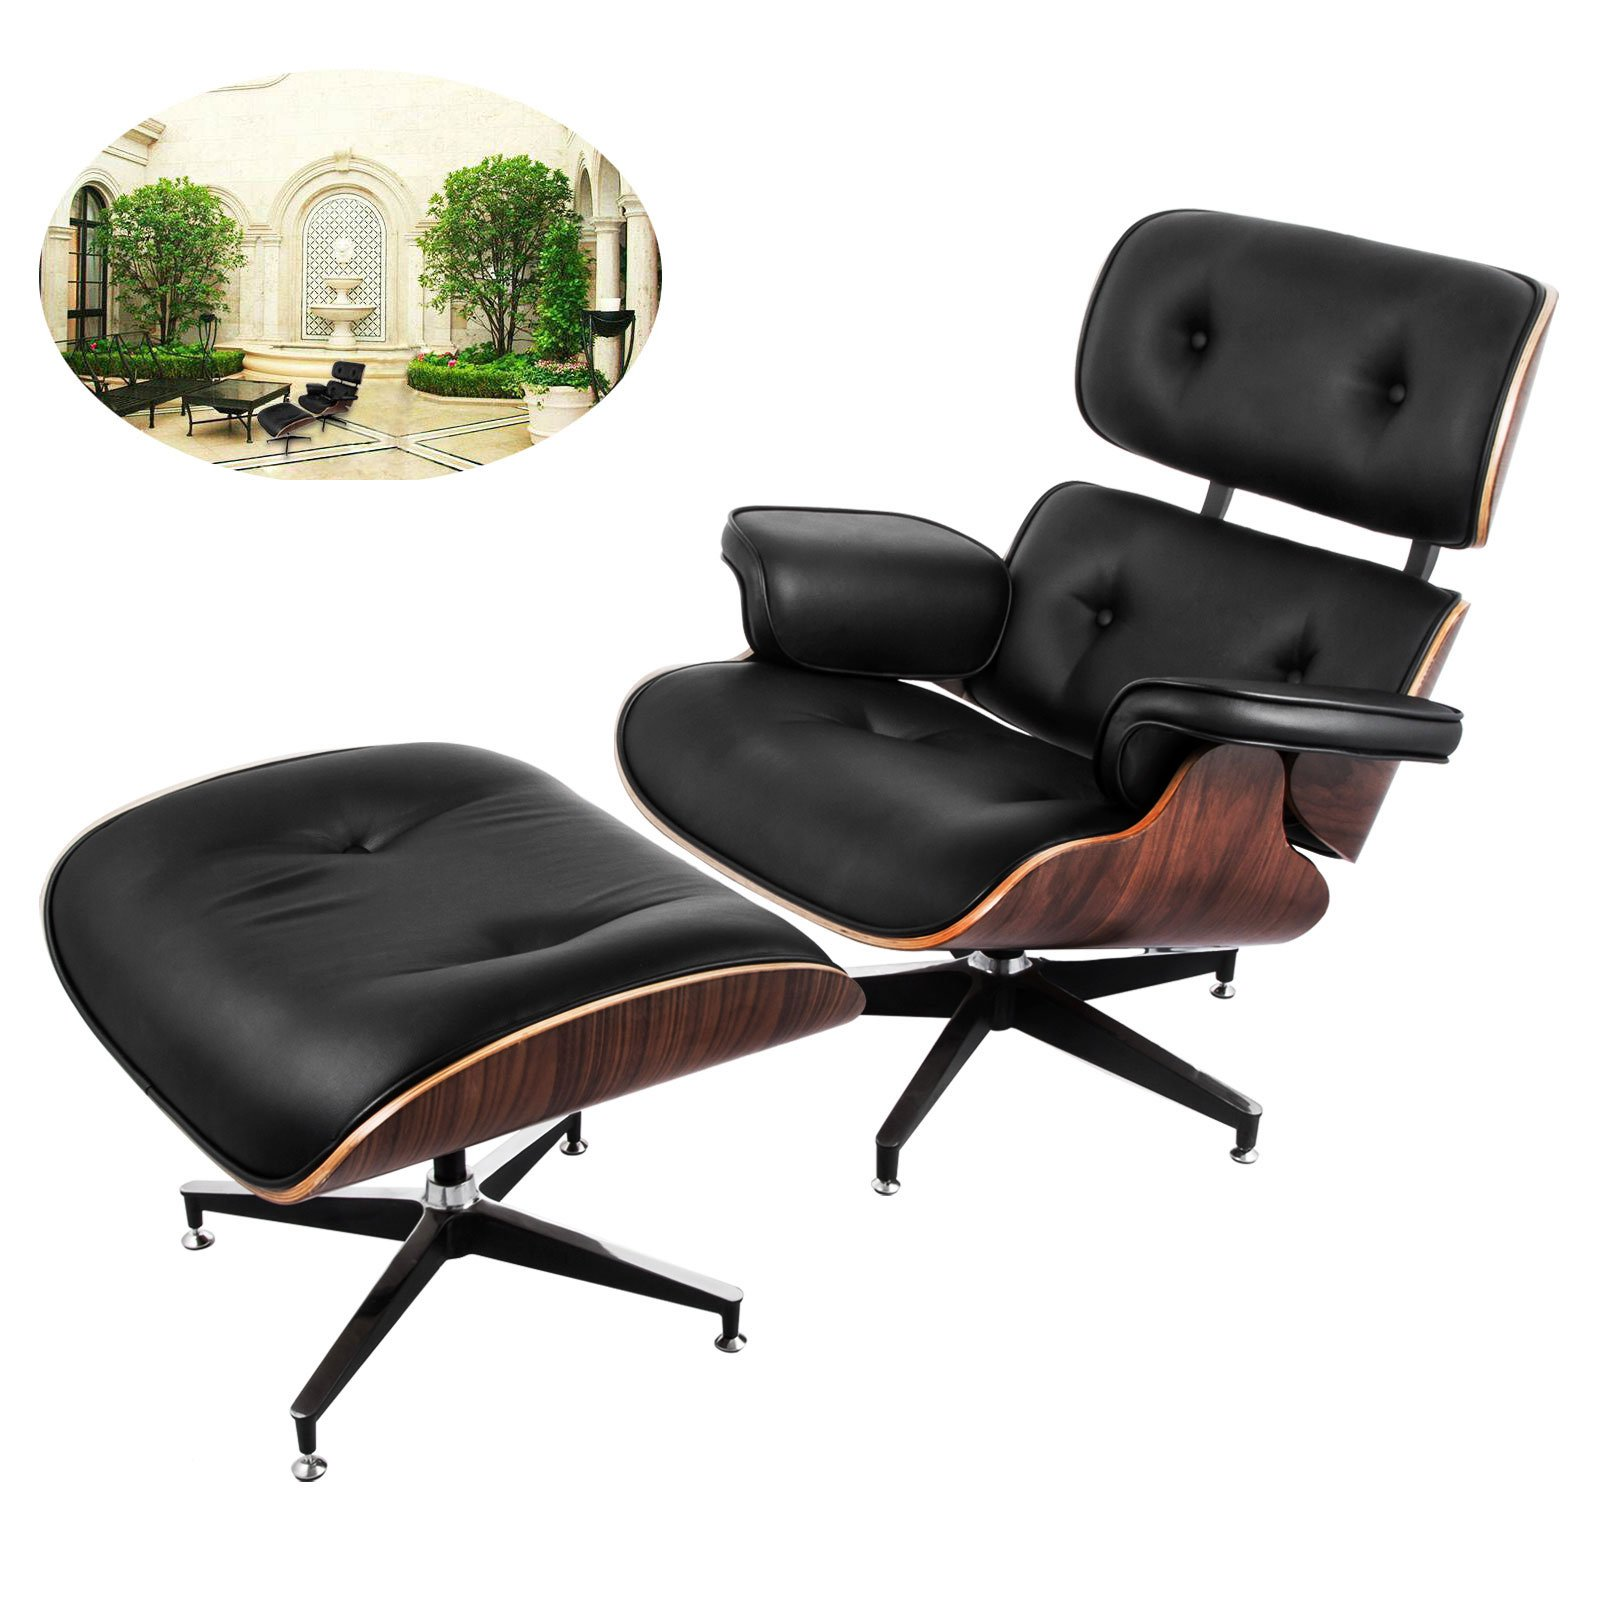 office lounge chair and ottoman vintage childs rocking buy vevor mid century modern classic design happybuy set 7 ply walnut laminated veneer style